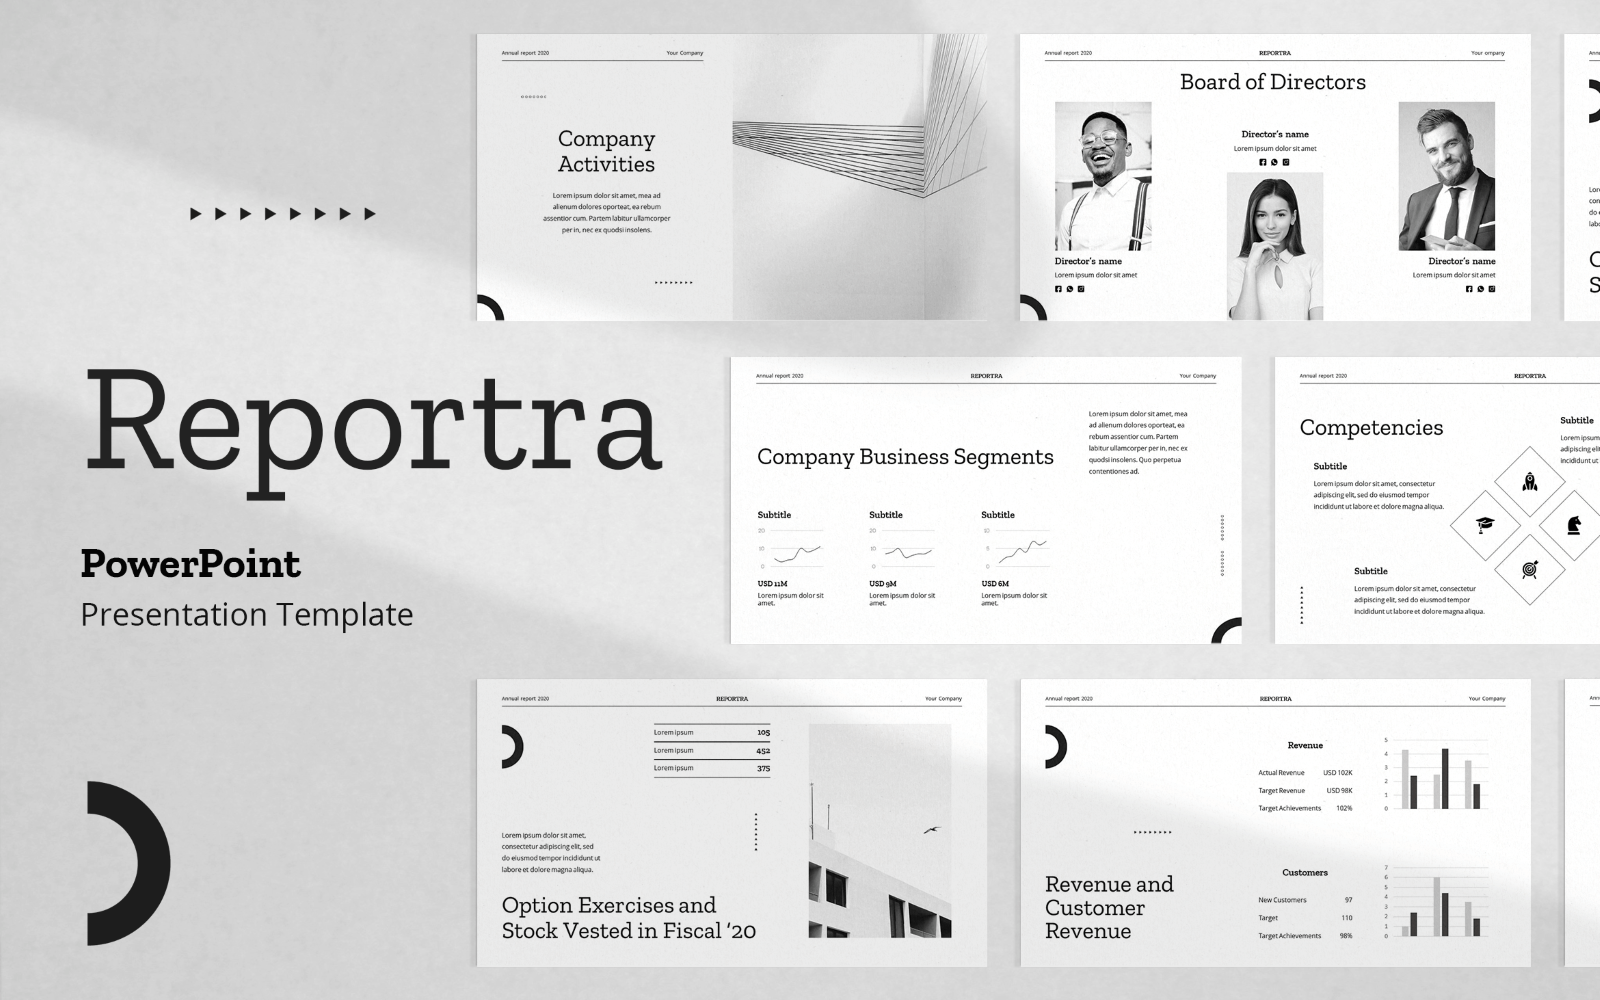 Reportra - Annual Report PowerPoint Presentation Template